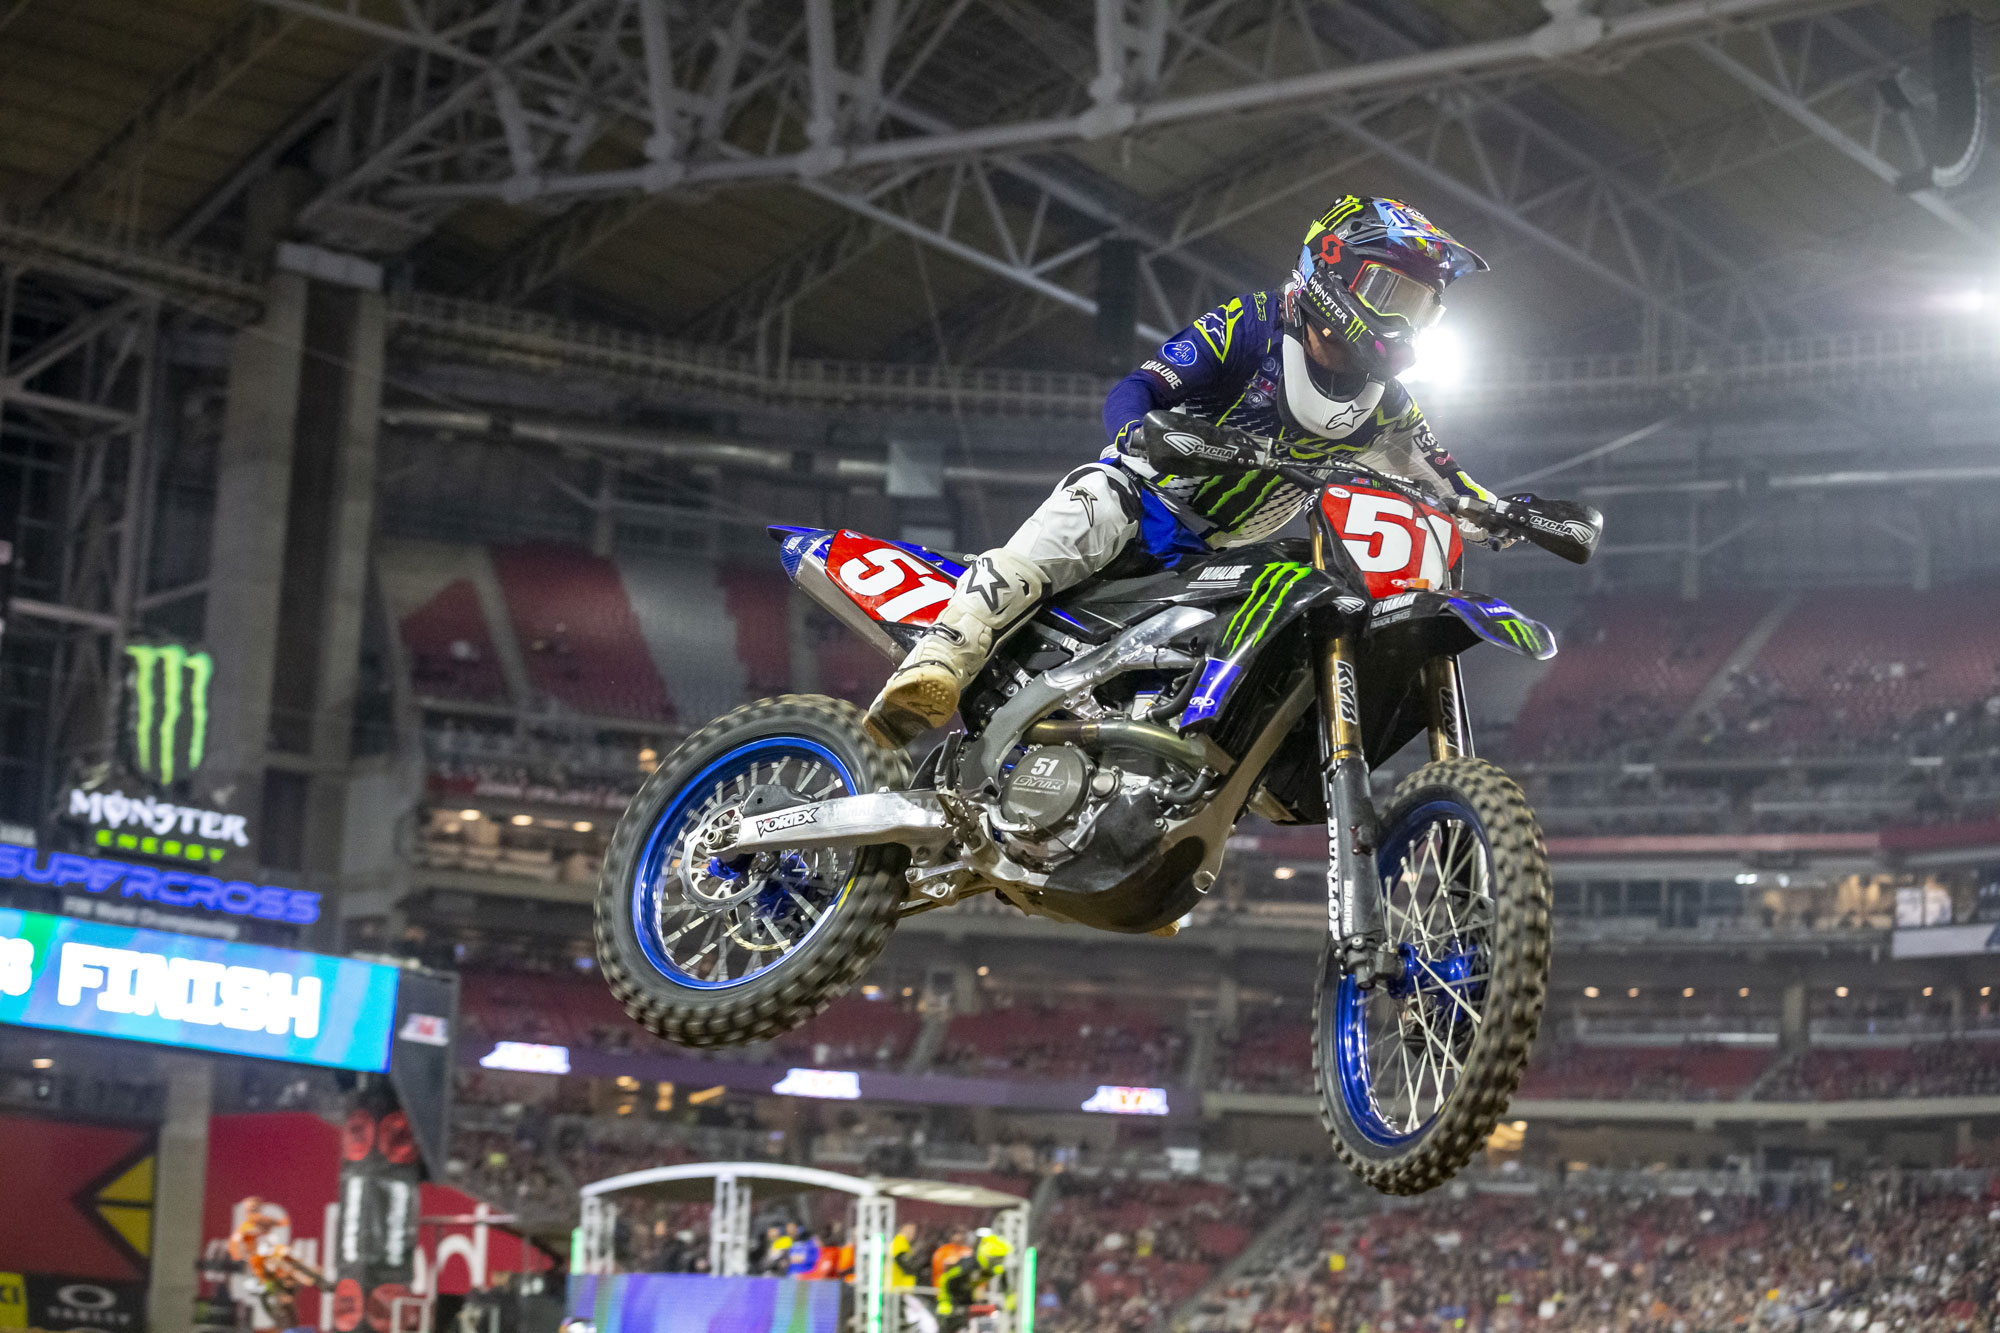 Monster Yamaha's Justin Barcia finished 6th